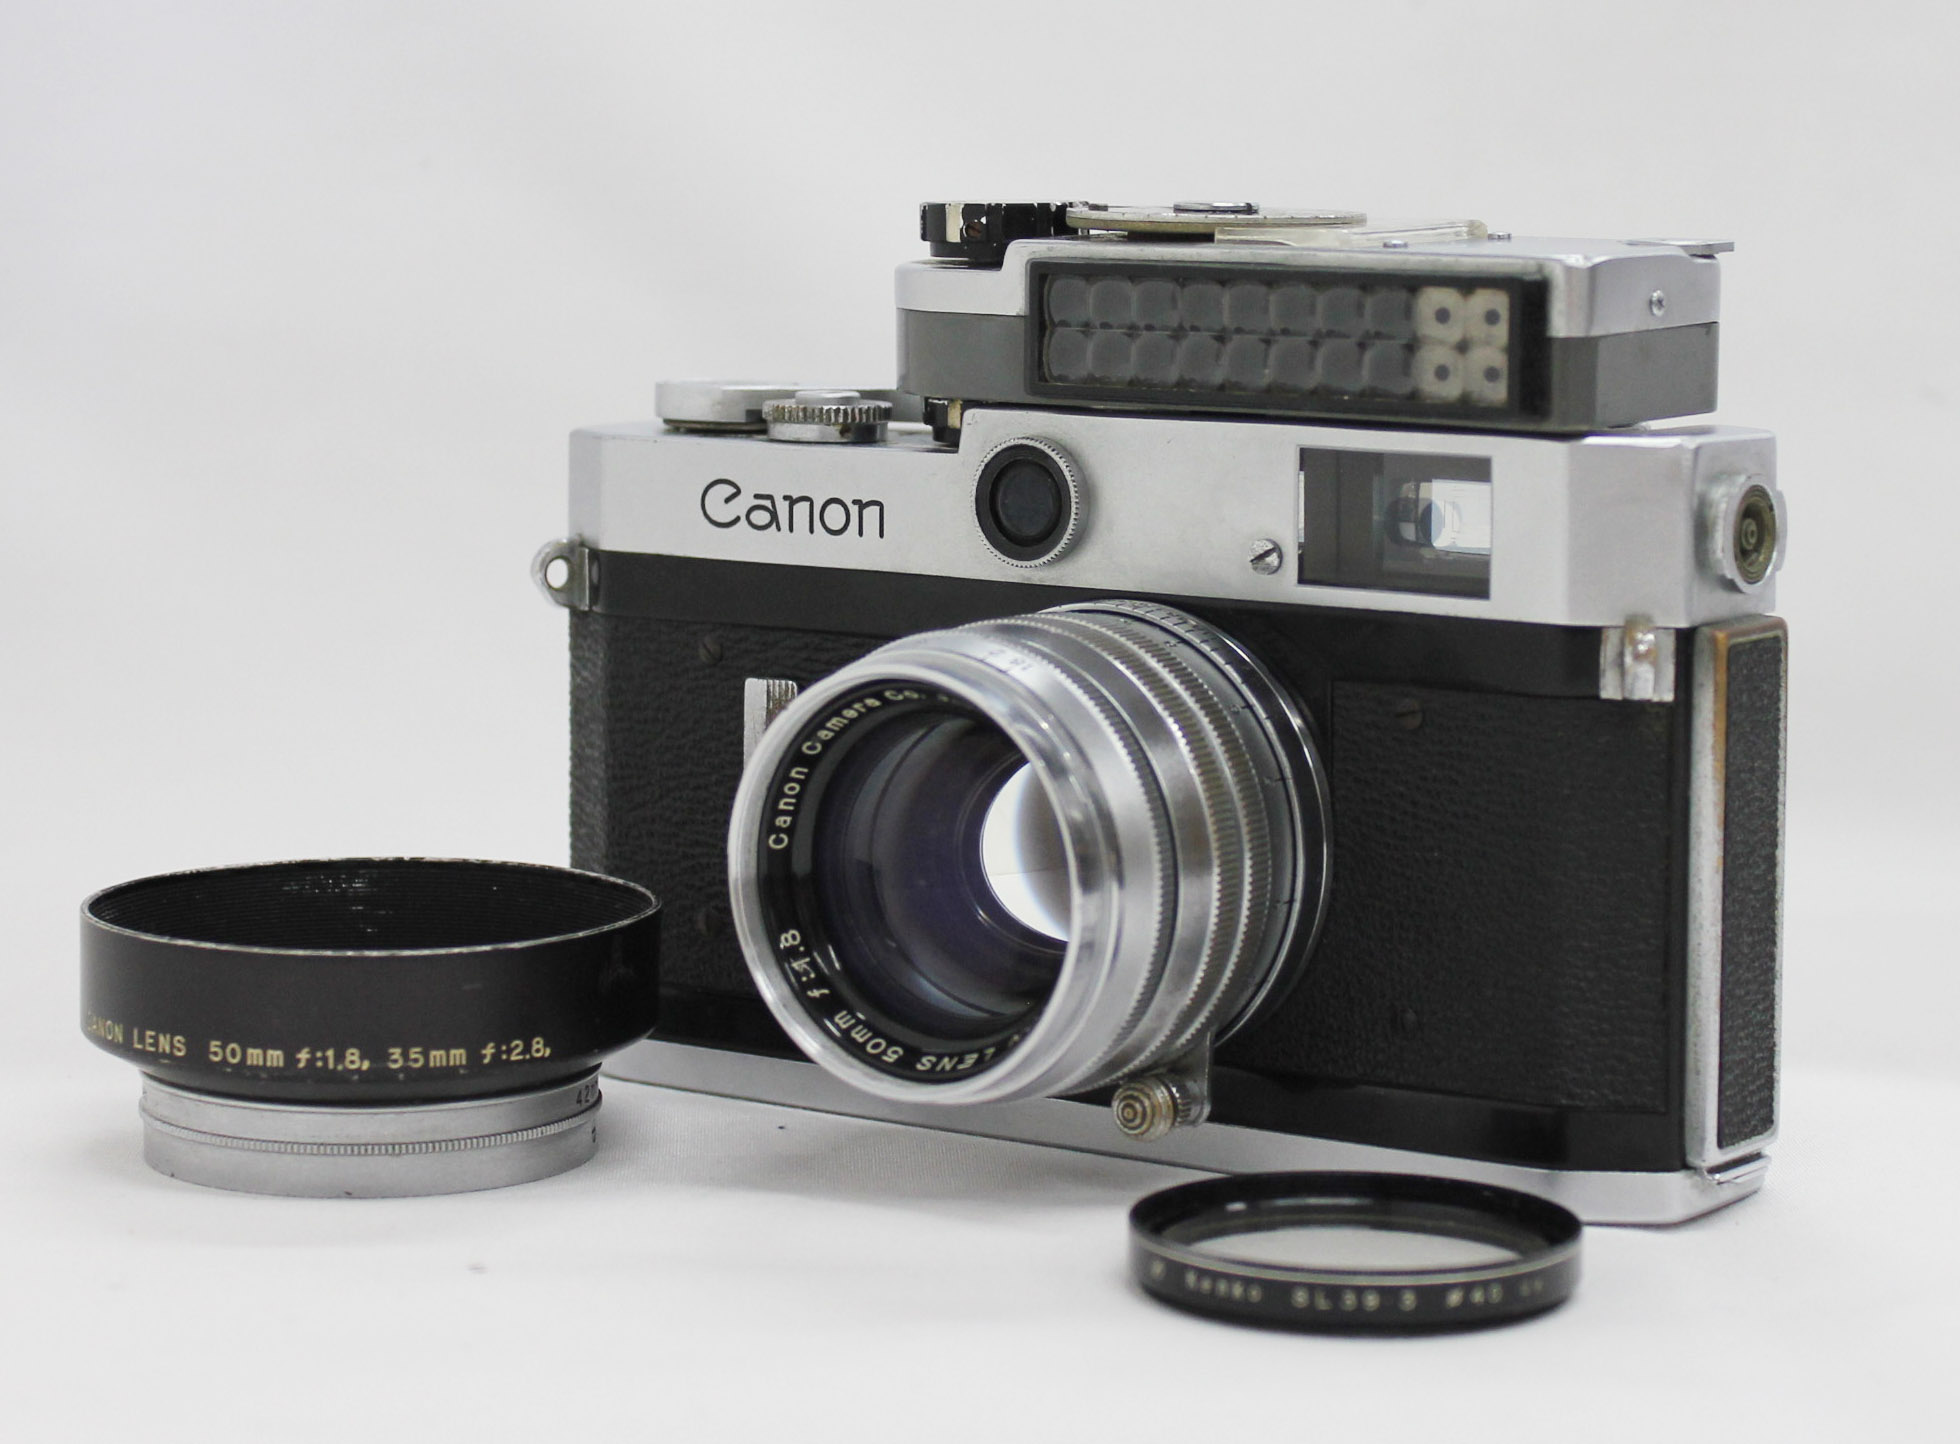 Japan Used Camera Shop | Canon P Rangefinder 35mm Film Camera with 50mm F/1.8 & Meter from Japan